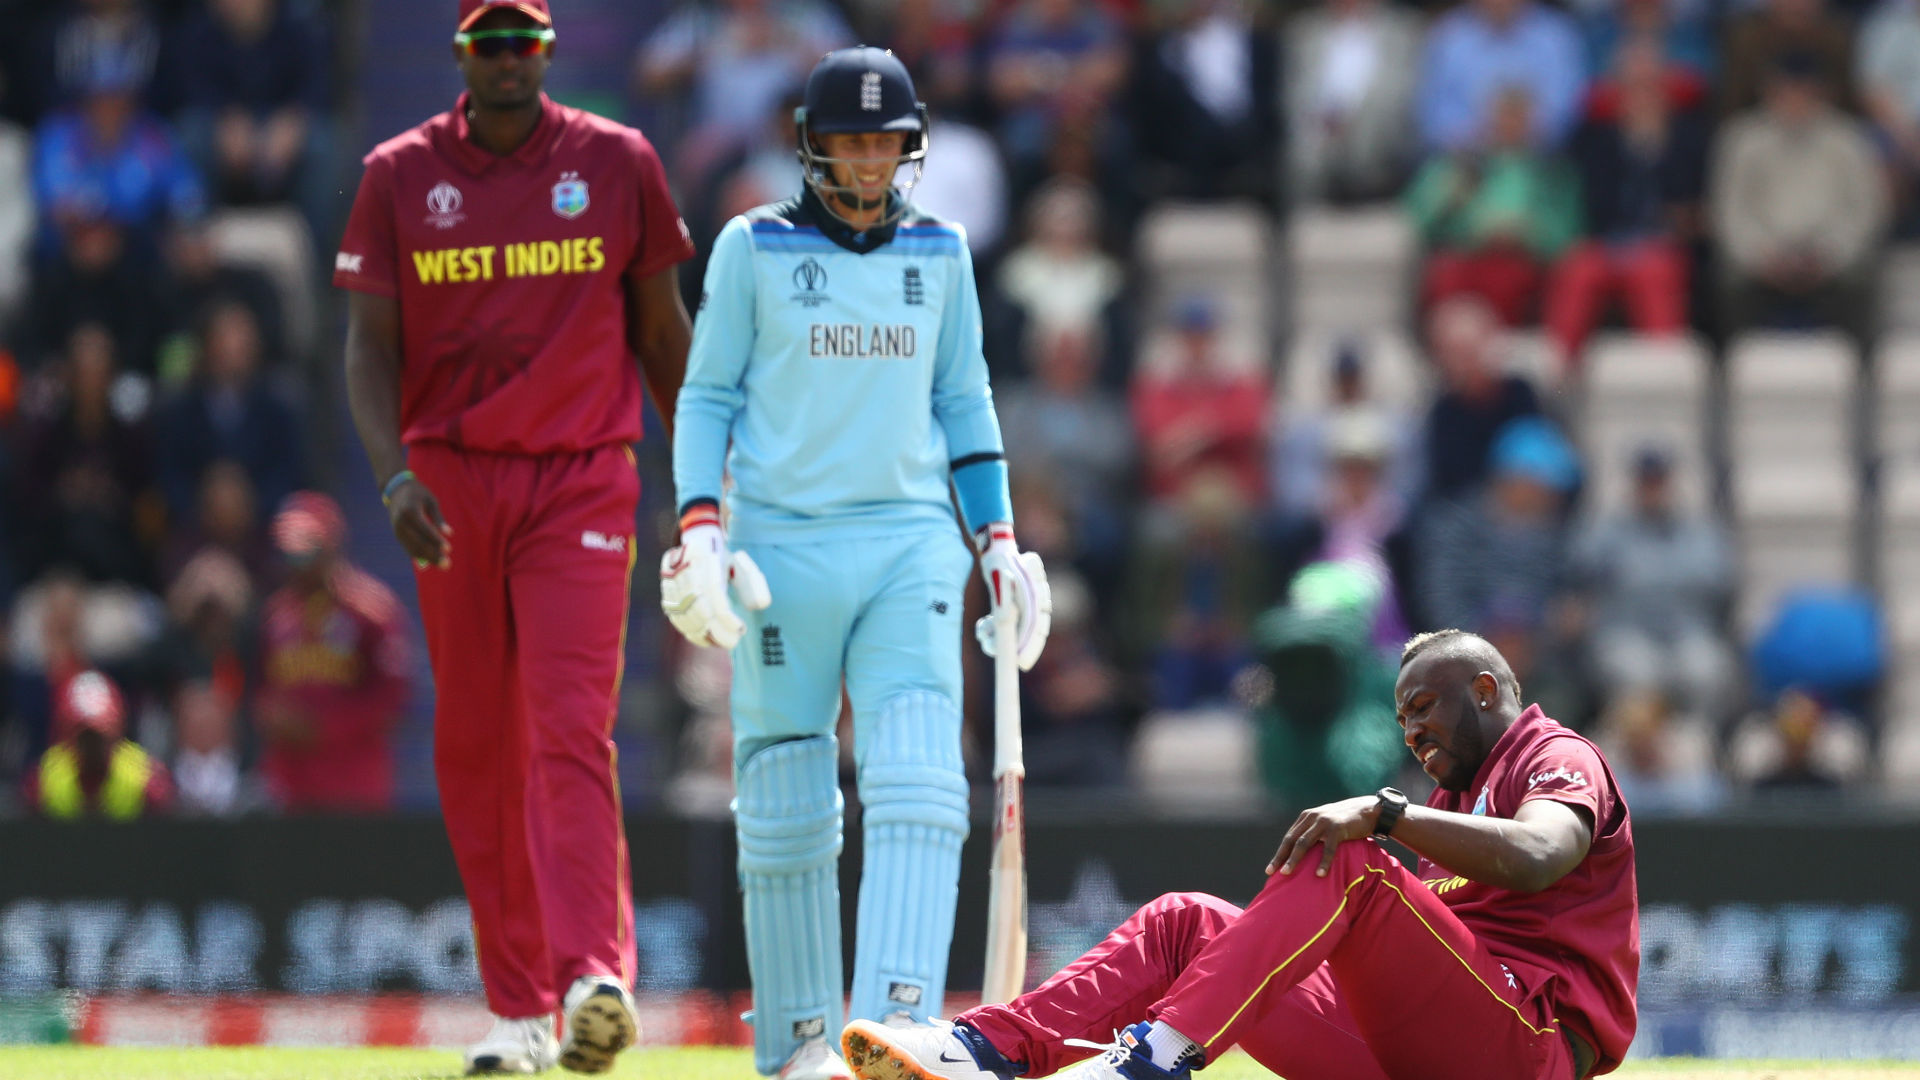 Windies lose Russell during England run chase